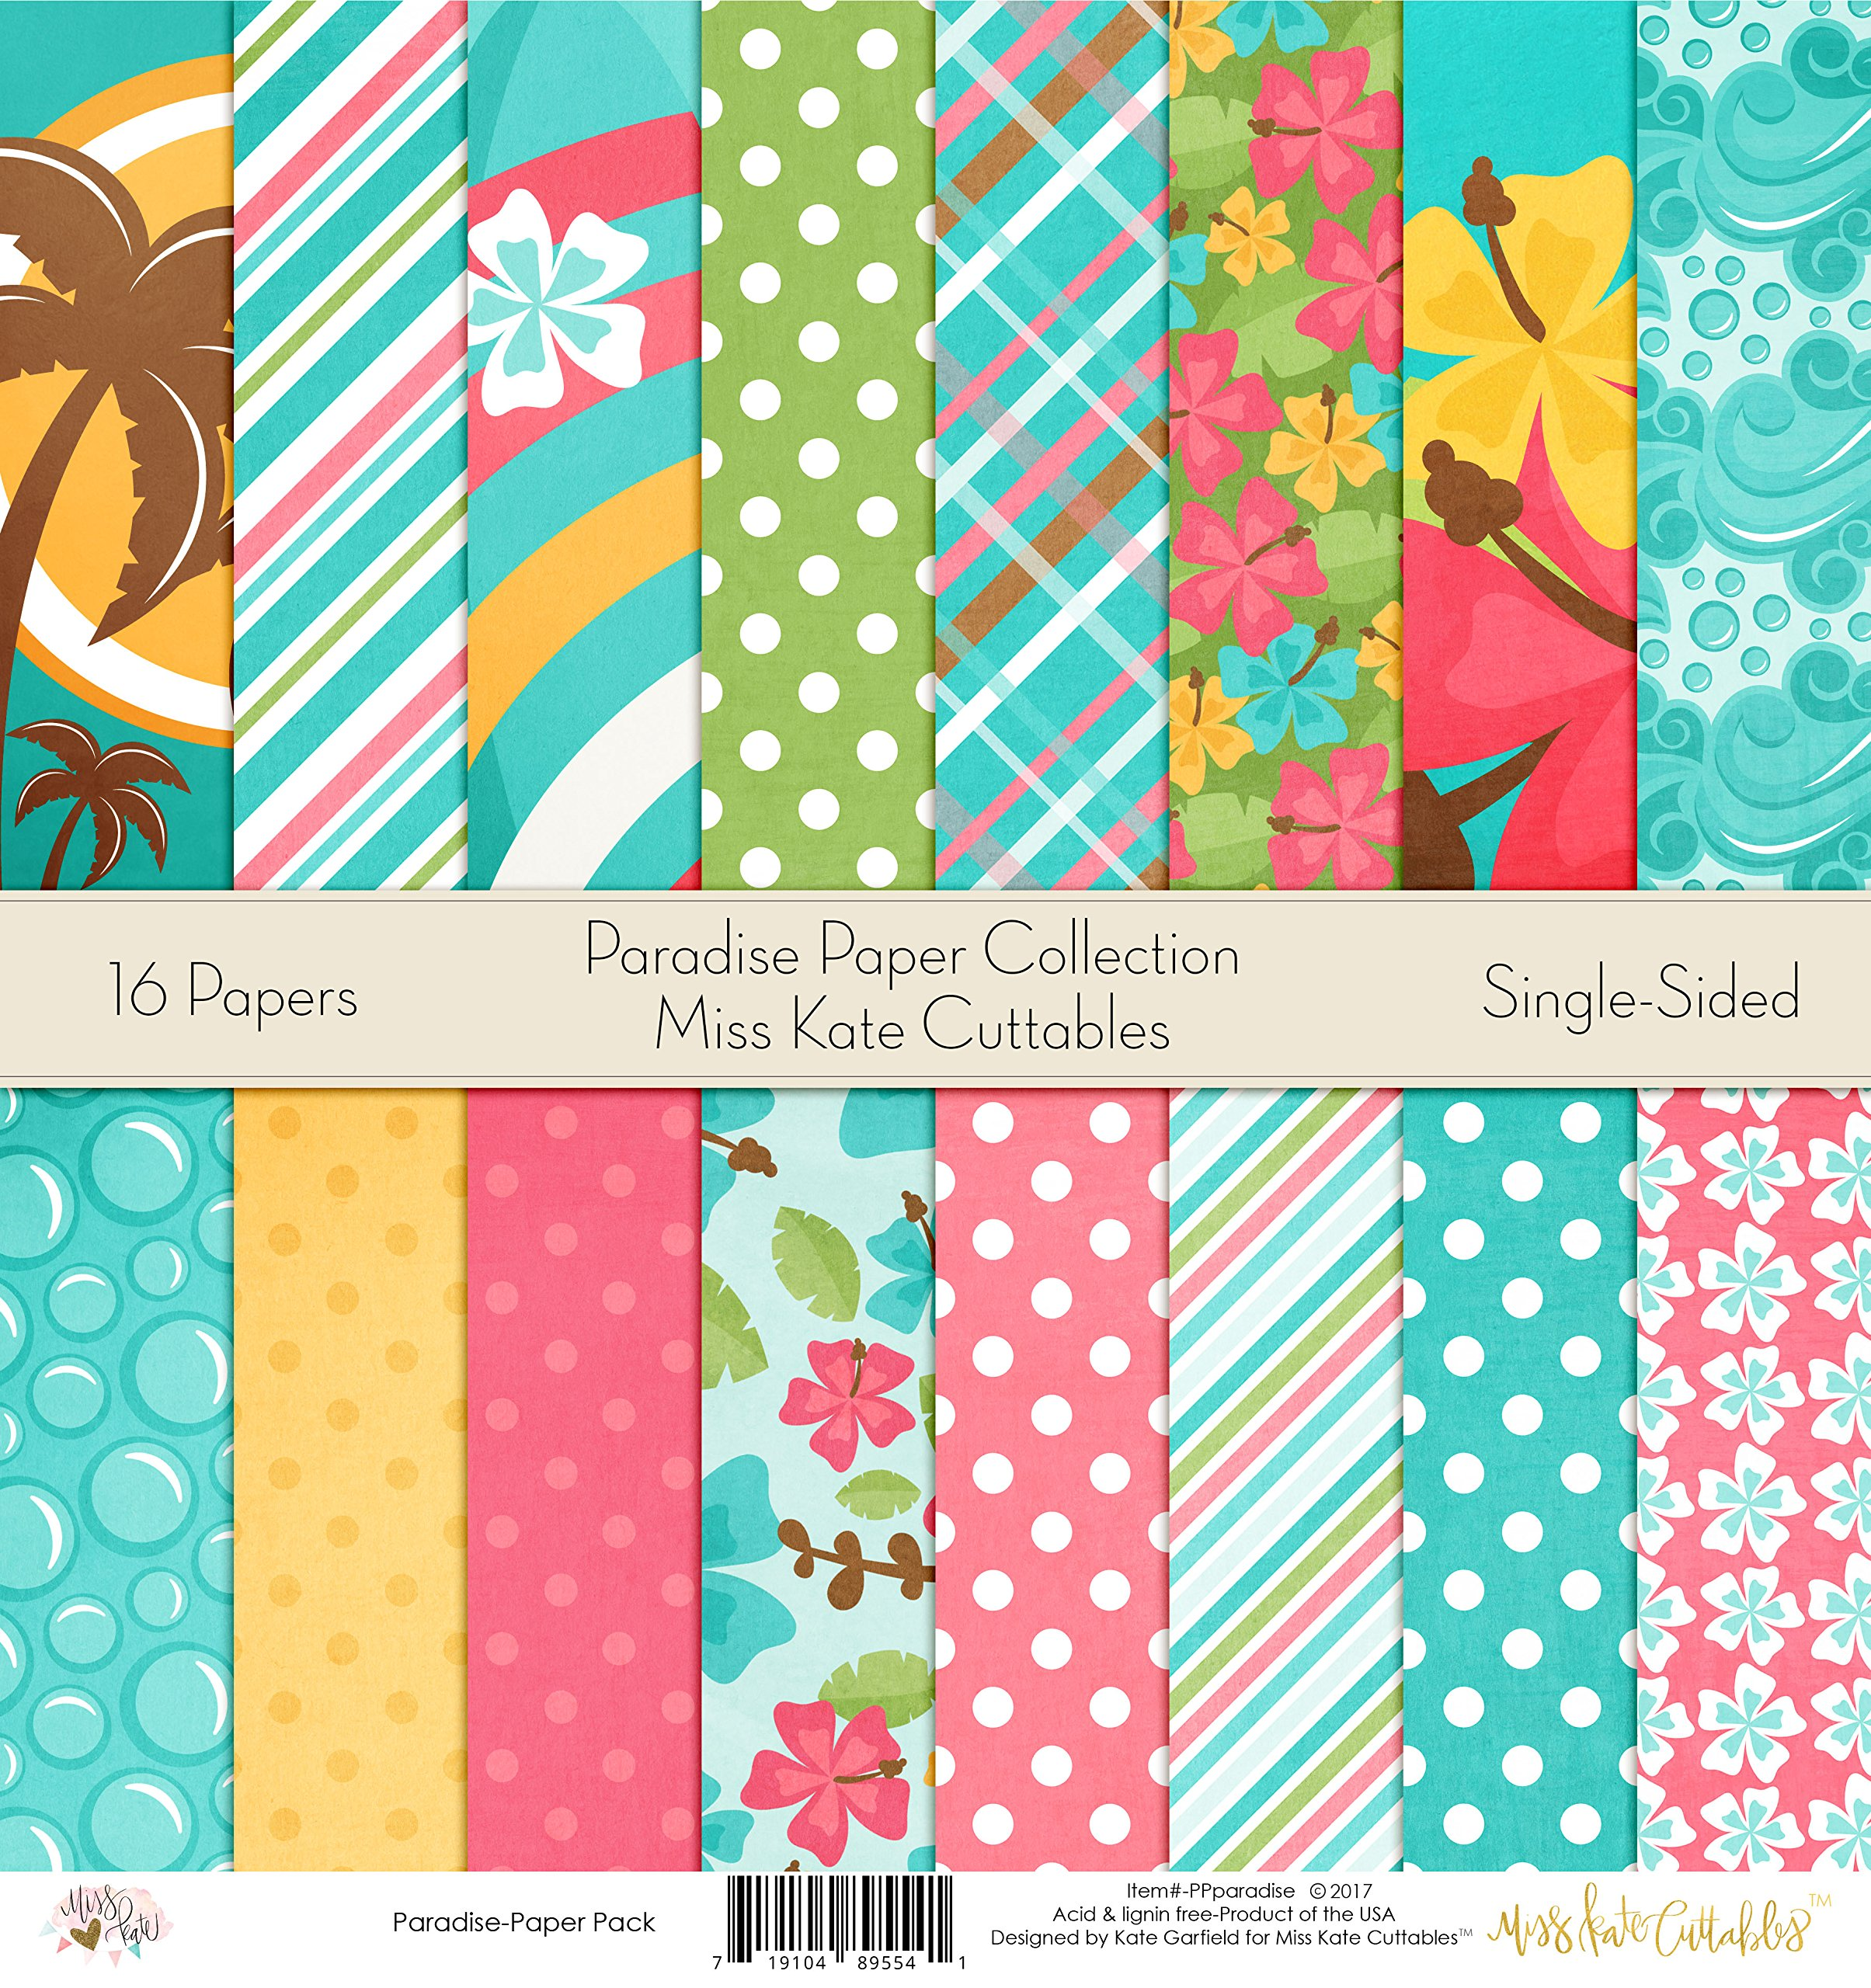 Pattern Paper Pack - Paradise - Scrapbook Premium Specialty Paper Single-Sided 12''x12'' Collection Includes 16 Sheets - by Miss Kate Cuttables